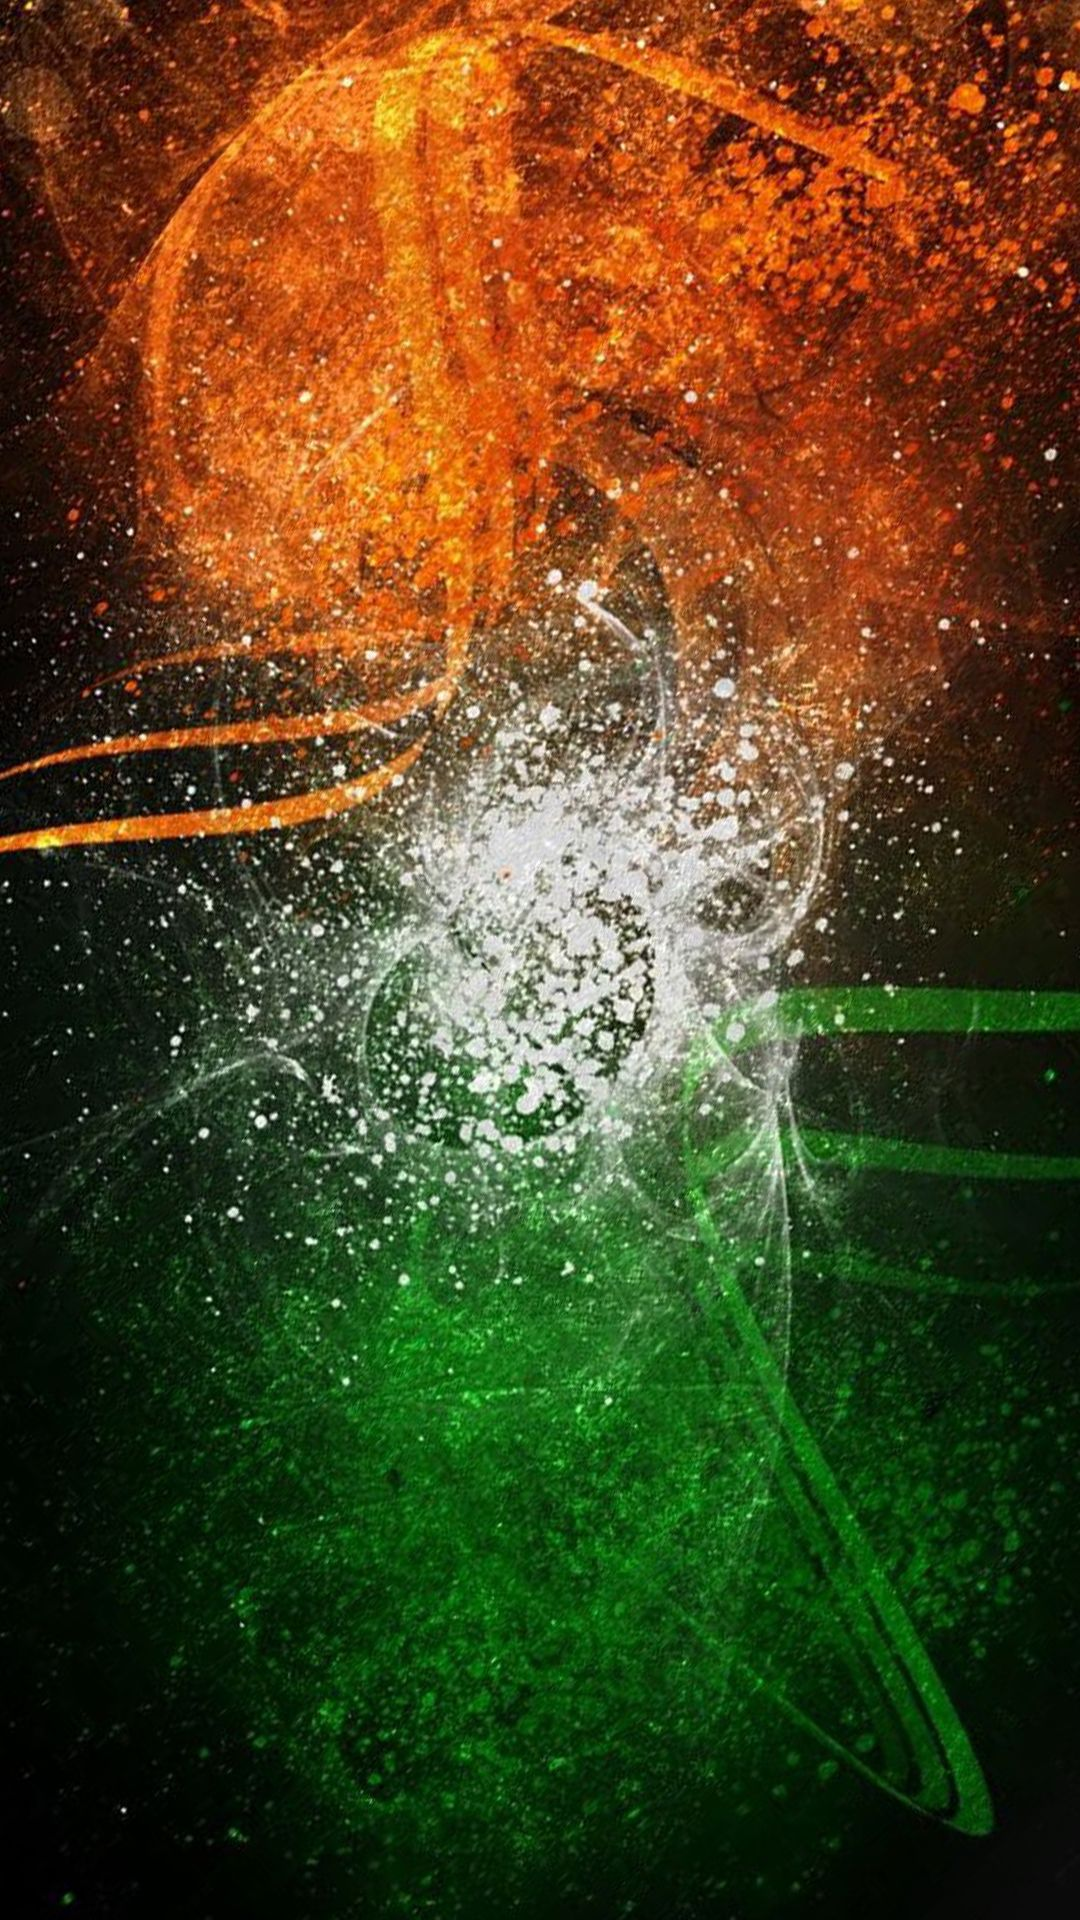 India Flag For Mobile Phone Wallpaper 17 Of 17 Artistic Tricolor